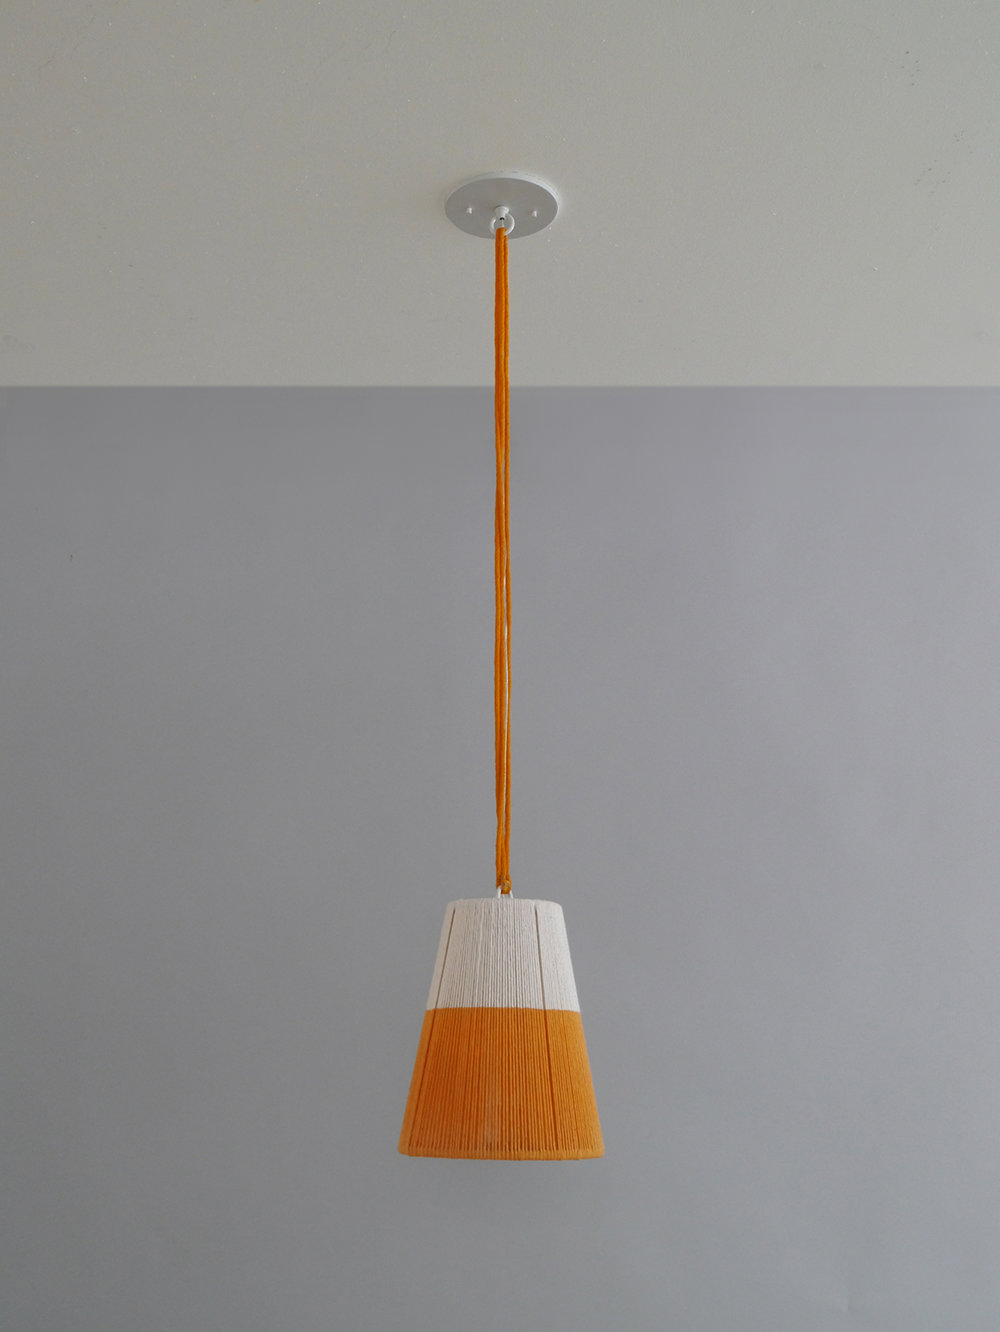 Rope_C-182_Horizon String Tapered Pendant_White_Orange.jpg